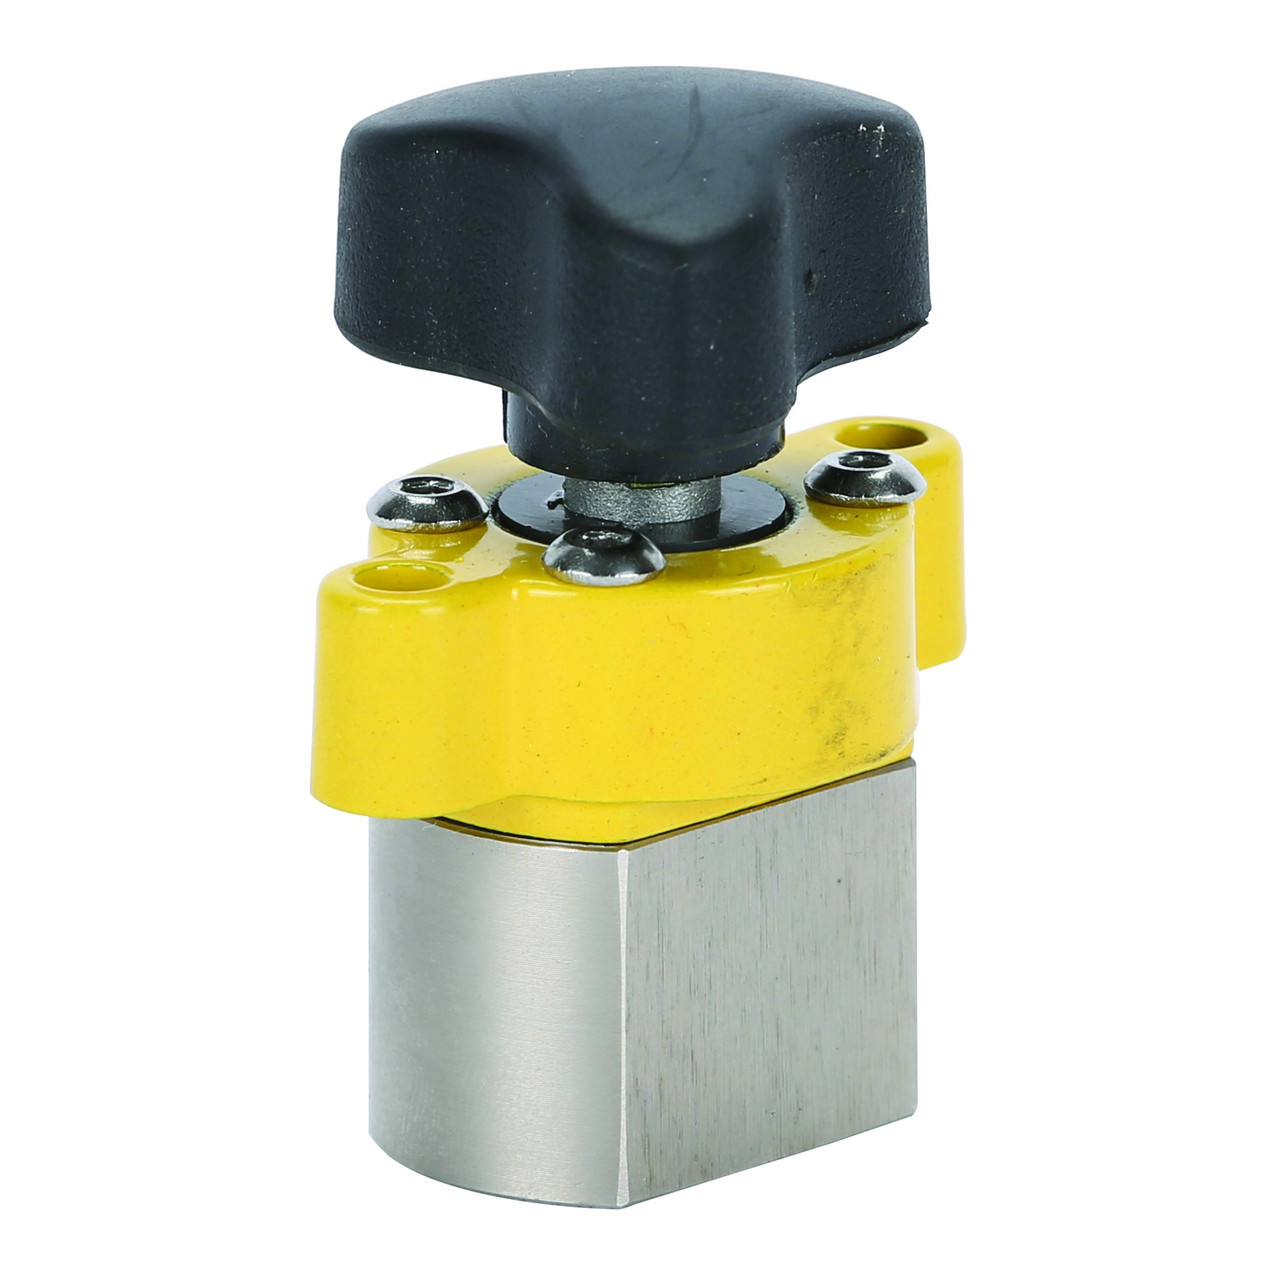 Magswitch MagJig 60, The Ultimate Workholding Clamp